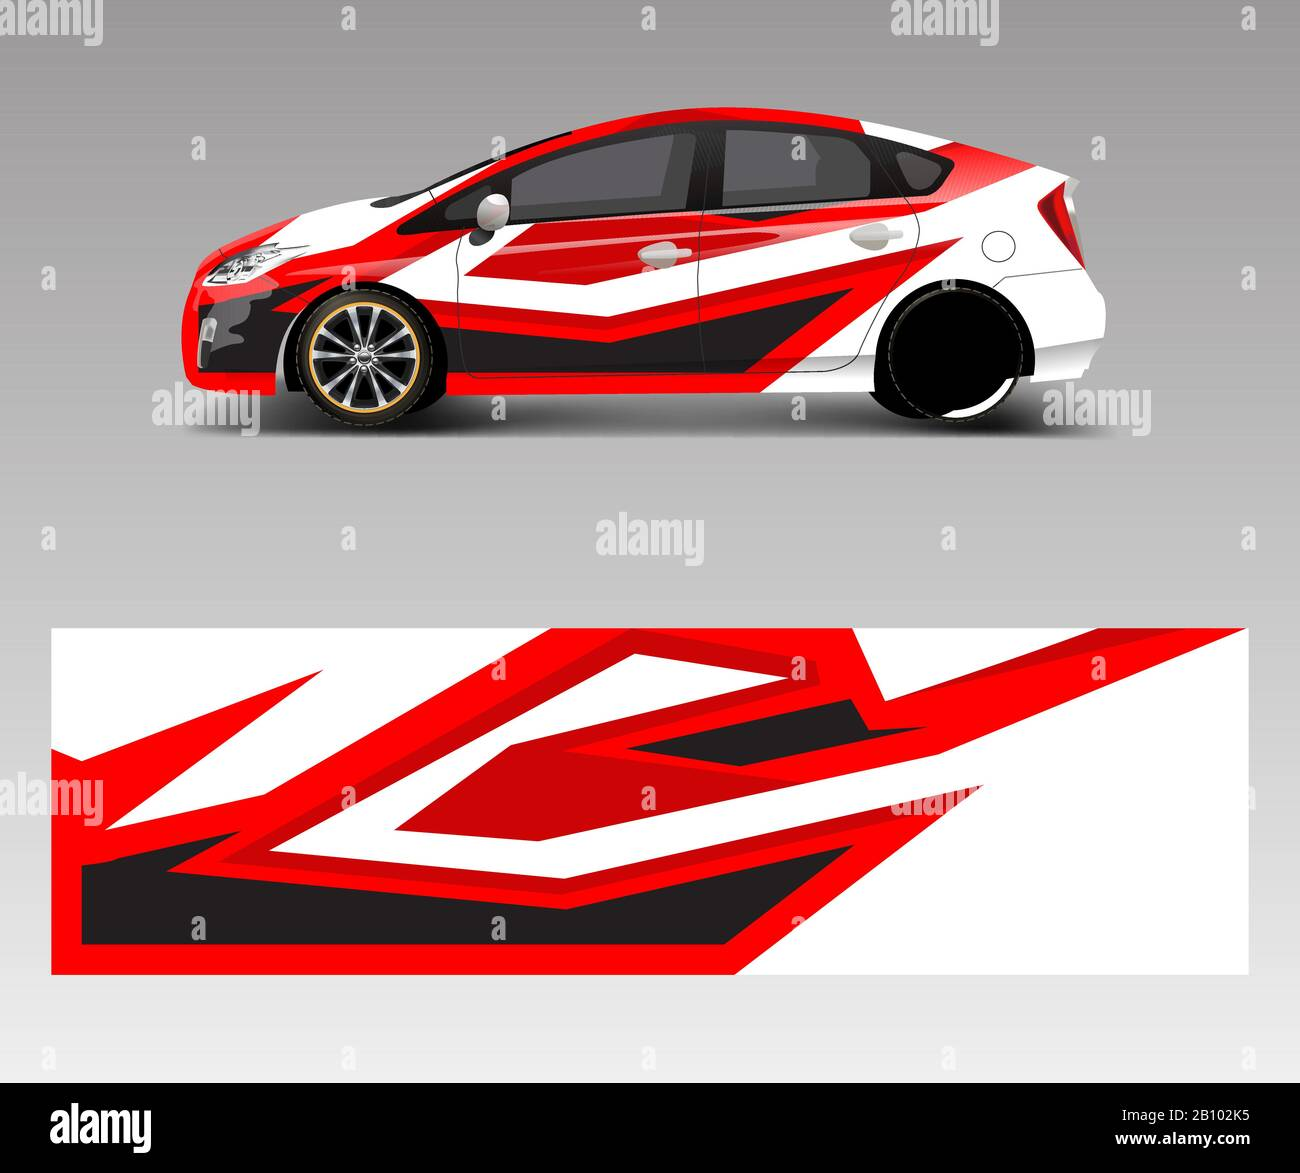 Car Decal Wrap Design Vector With Wave Element Graphic Abstract Wave Shapes Racing For Vehicle Race Car Template Design Vector Stock Vector Image Art Alamy